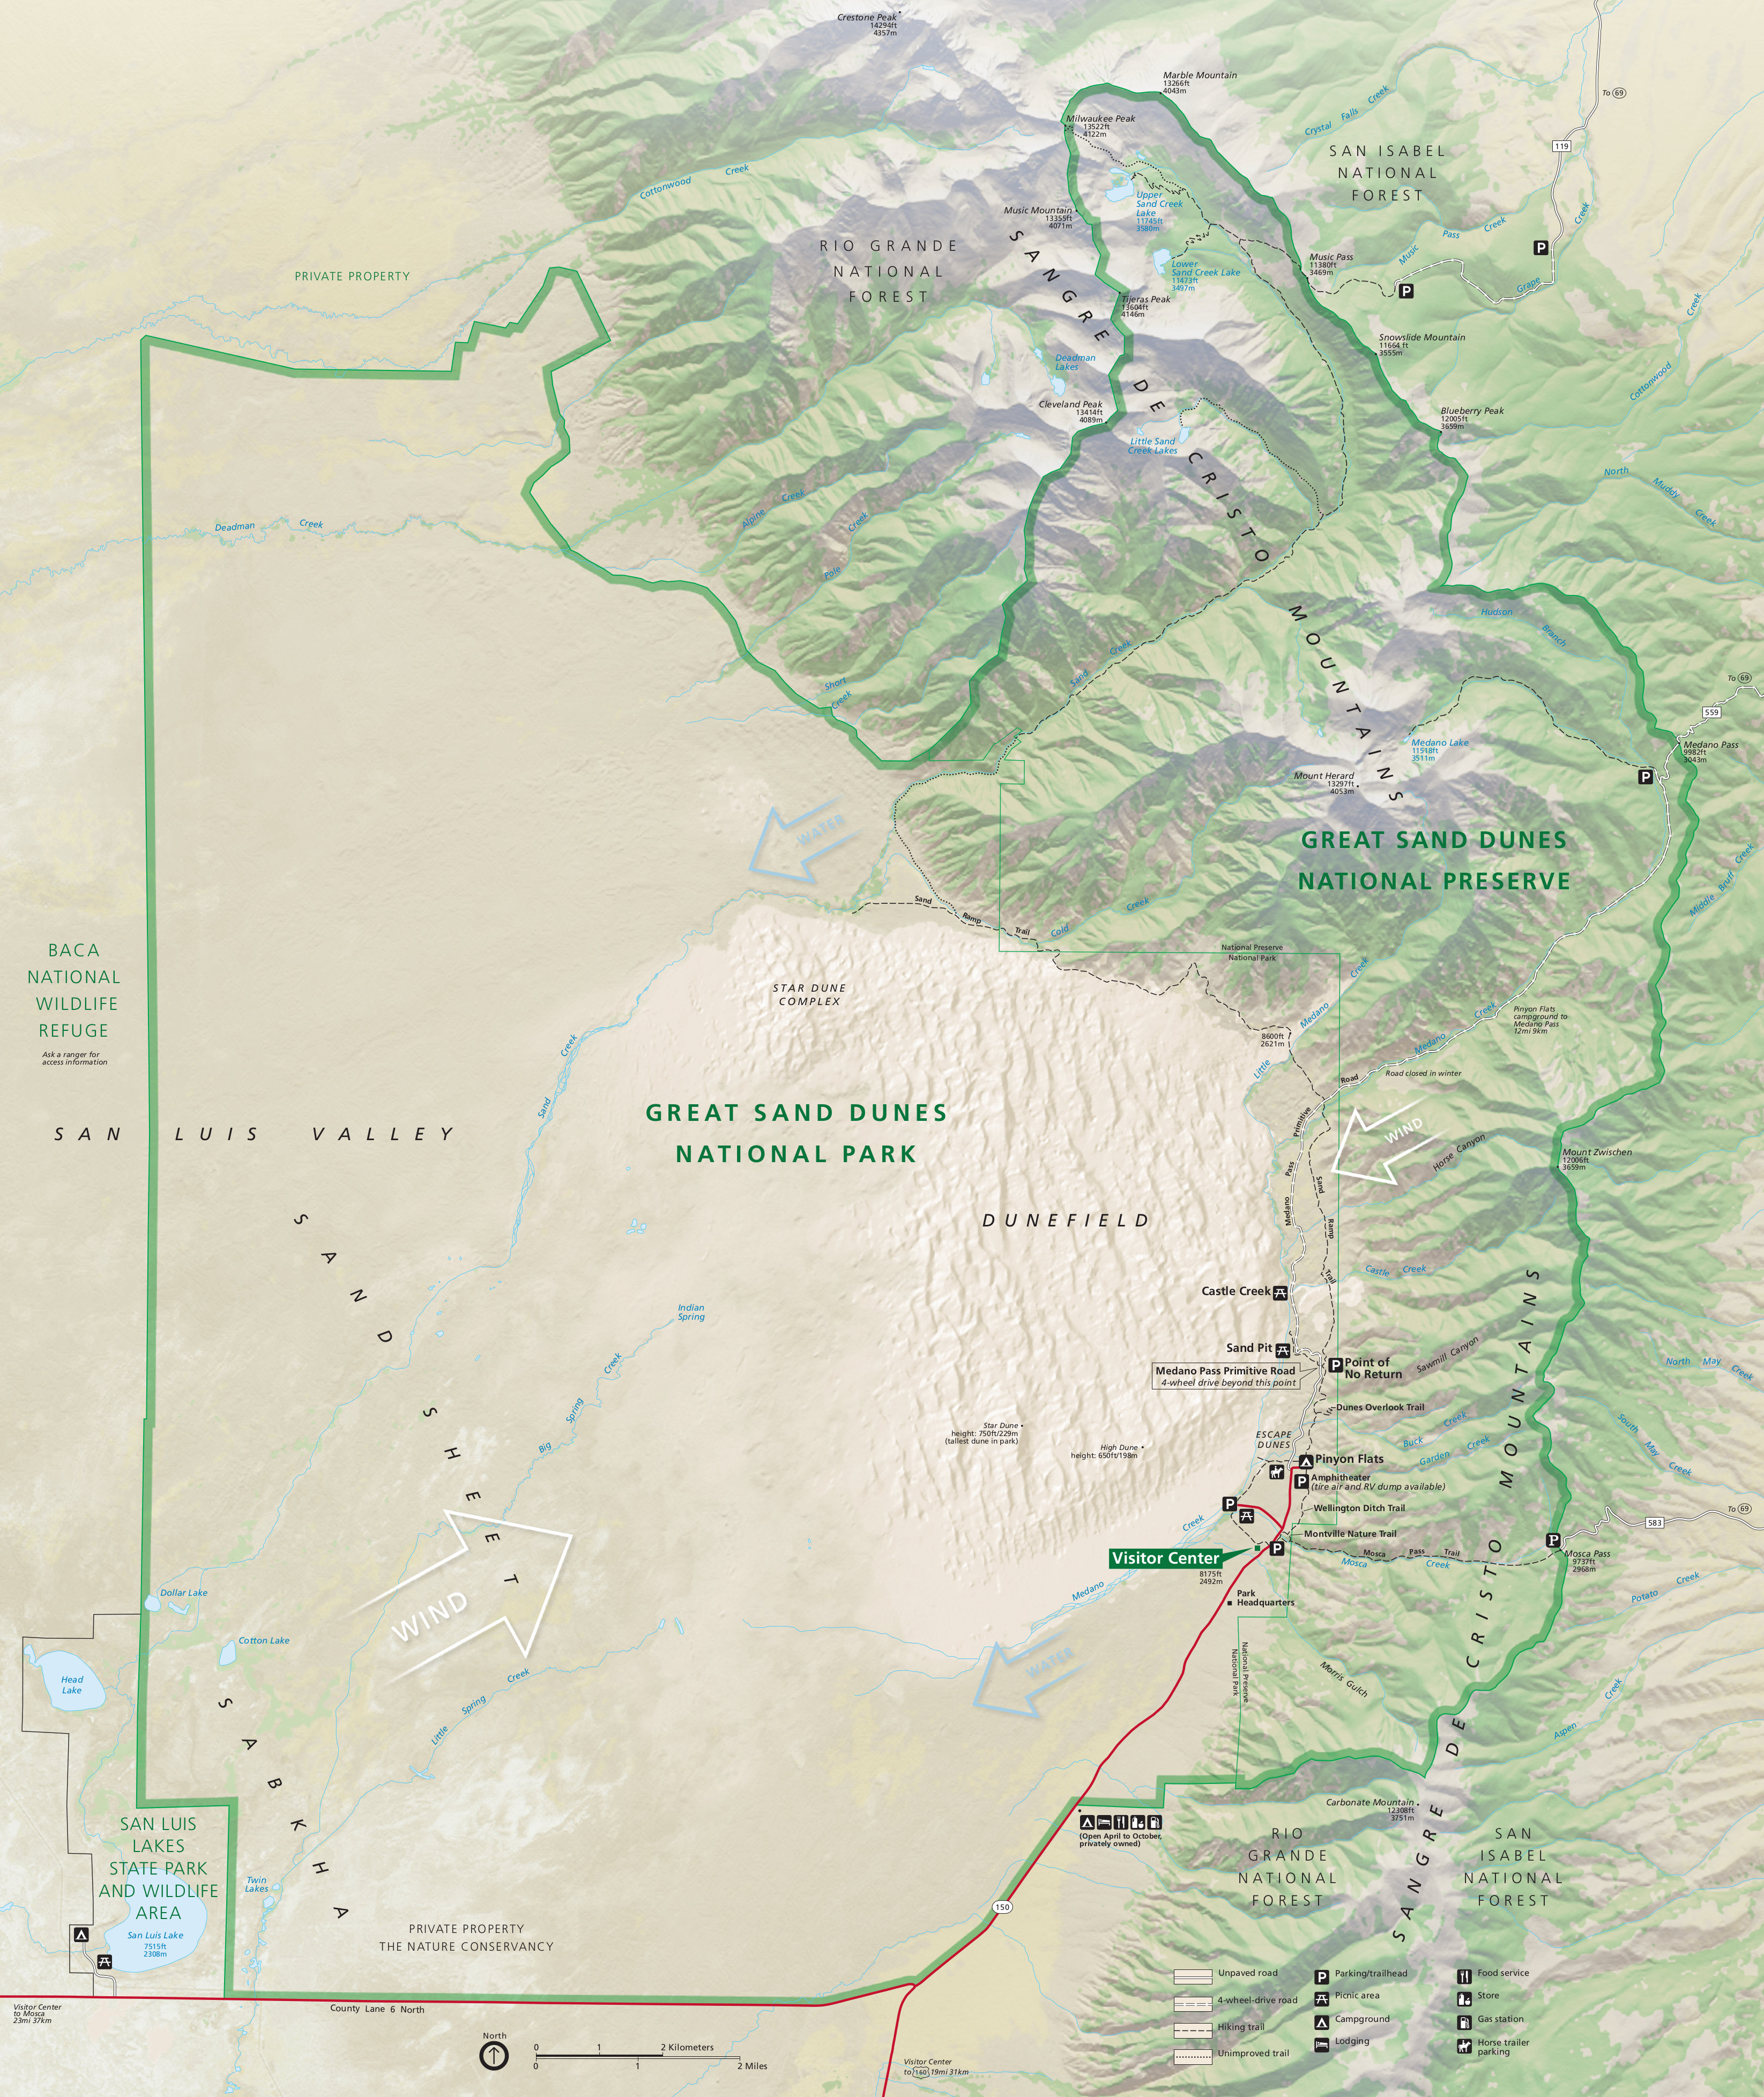 National Parks - Us national parks interactive map